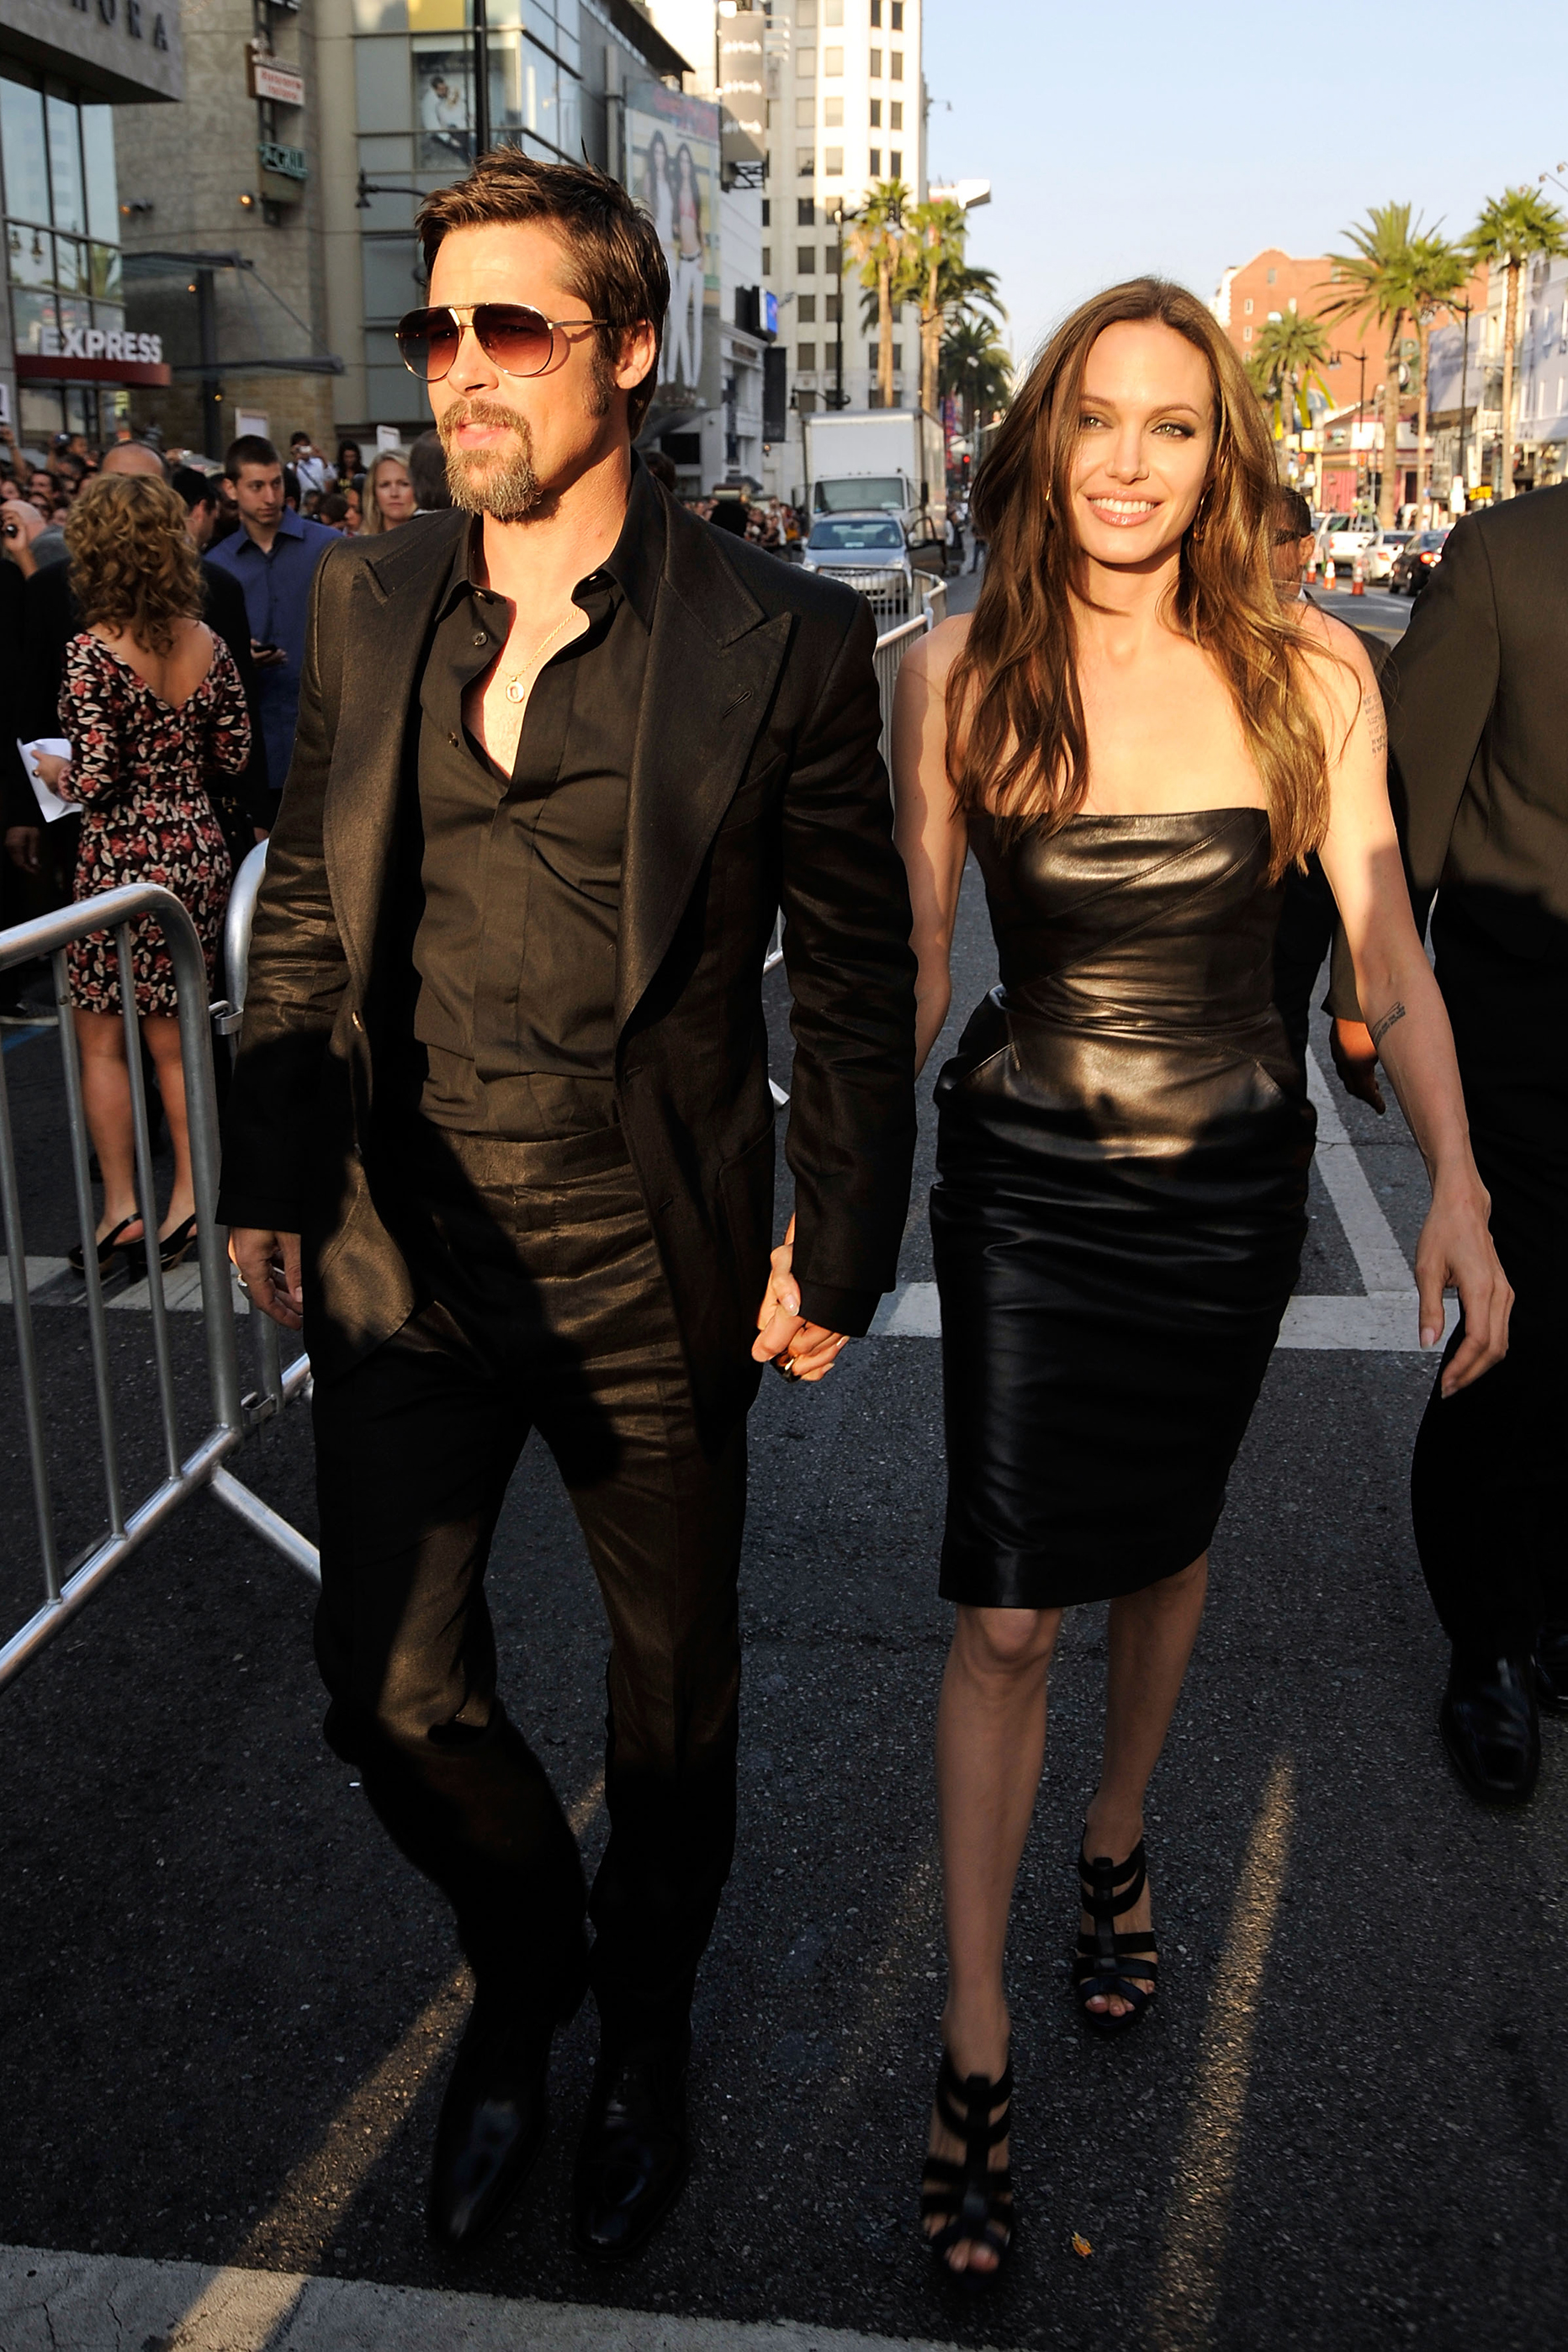 Brad Pitt and Angelina Jolie arrive at the premiere of Inglourious Basterds on Aug. 10, 2009 in Hollywood, Calif.